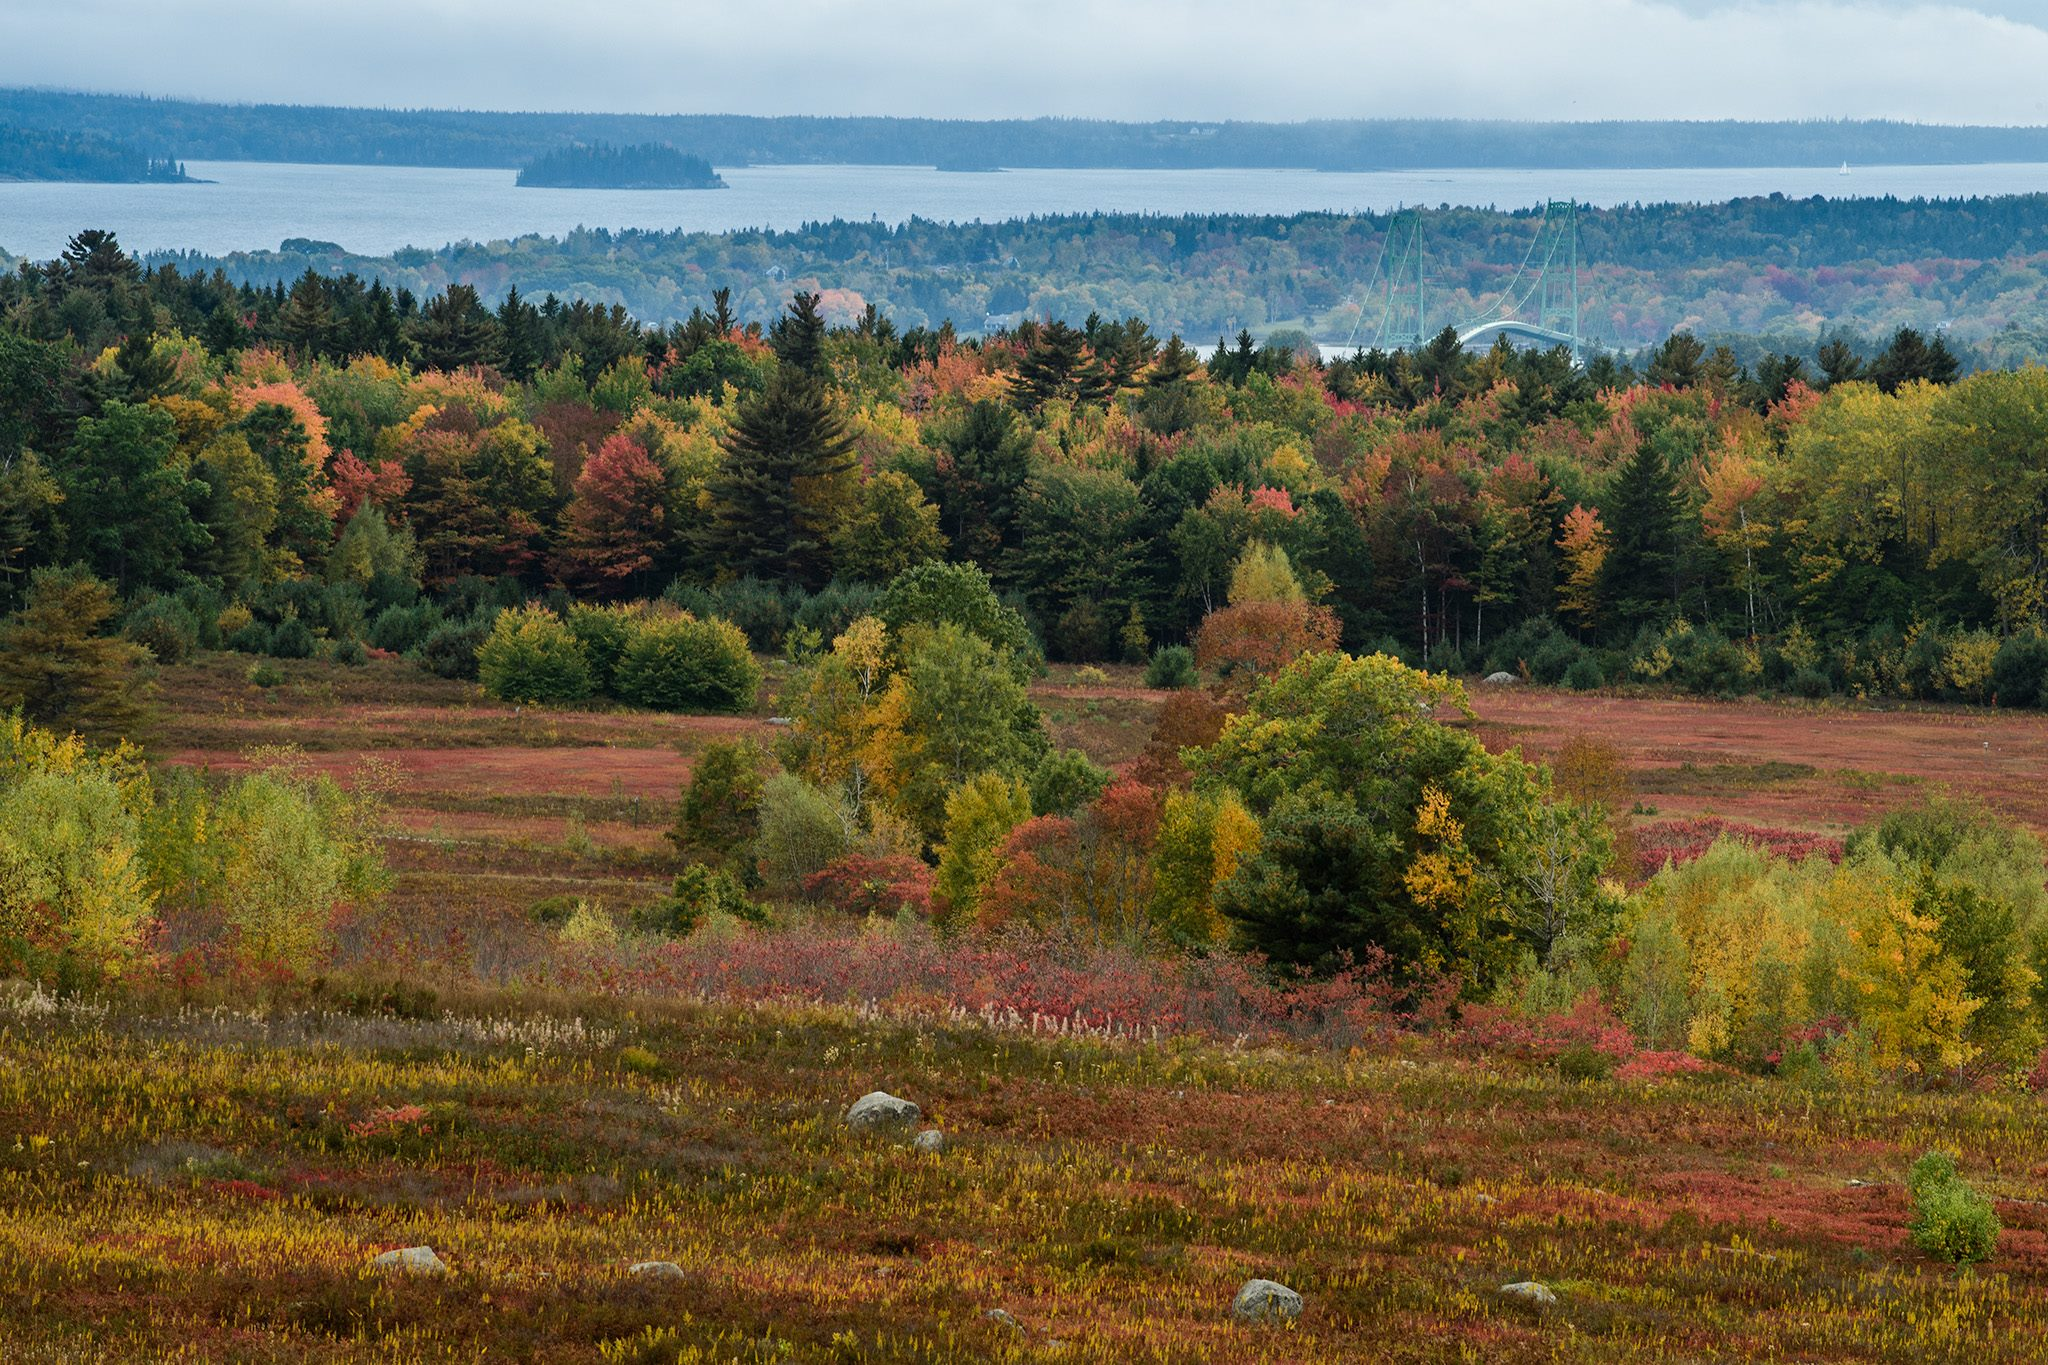 Views from the overlook at Caterpillar Hill in Sedgwick to the Deer Isle Bridge and Deer Isle